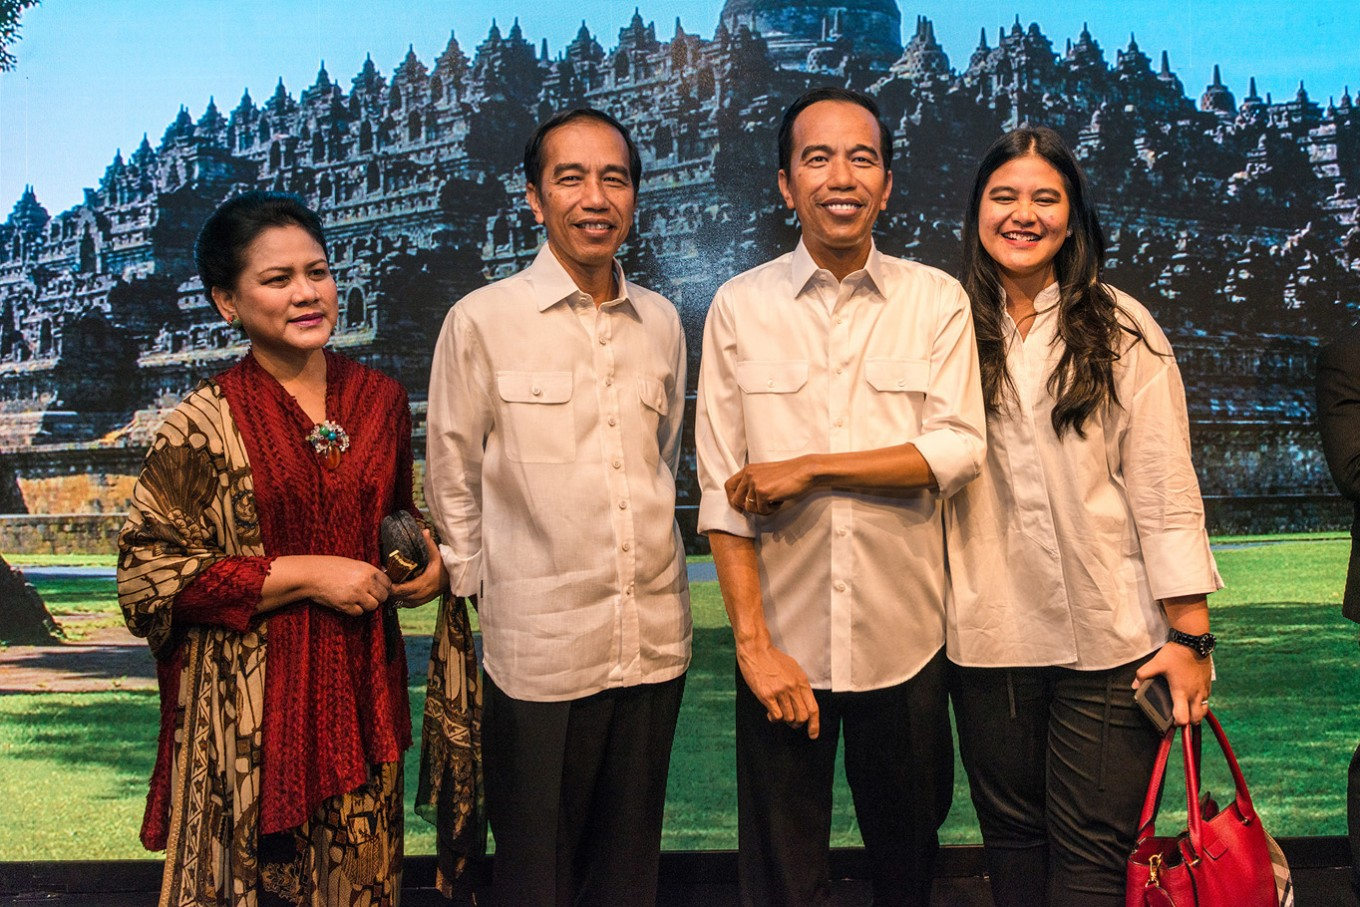 Jokowi visited the museum together with his family and unveiled the figure himself, becoming the first state leader to do so.